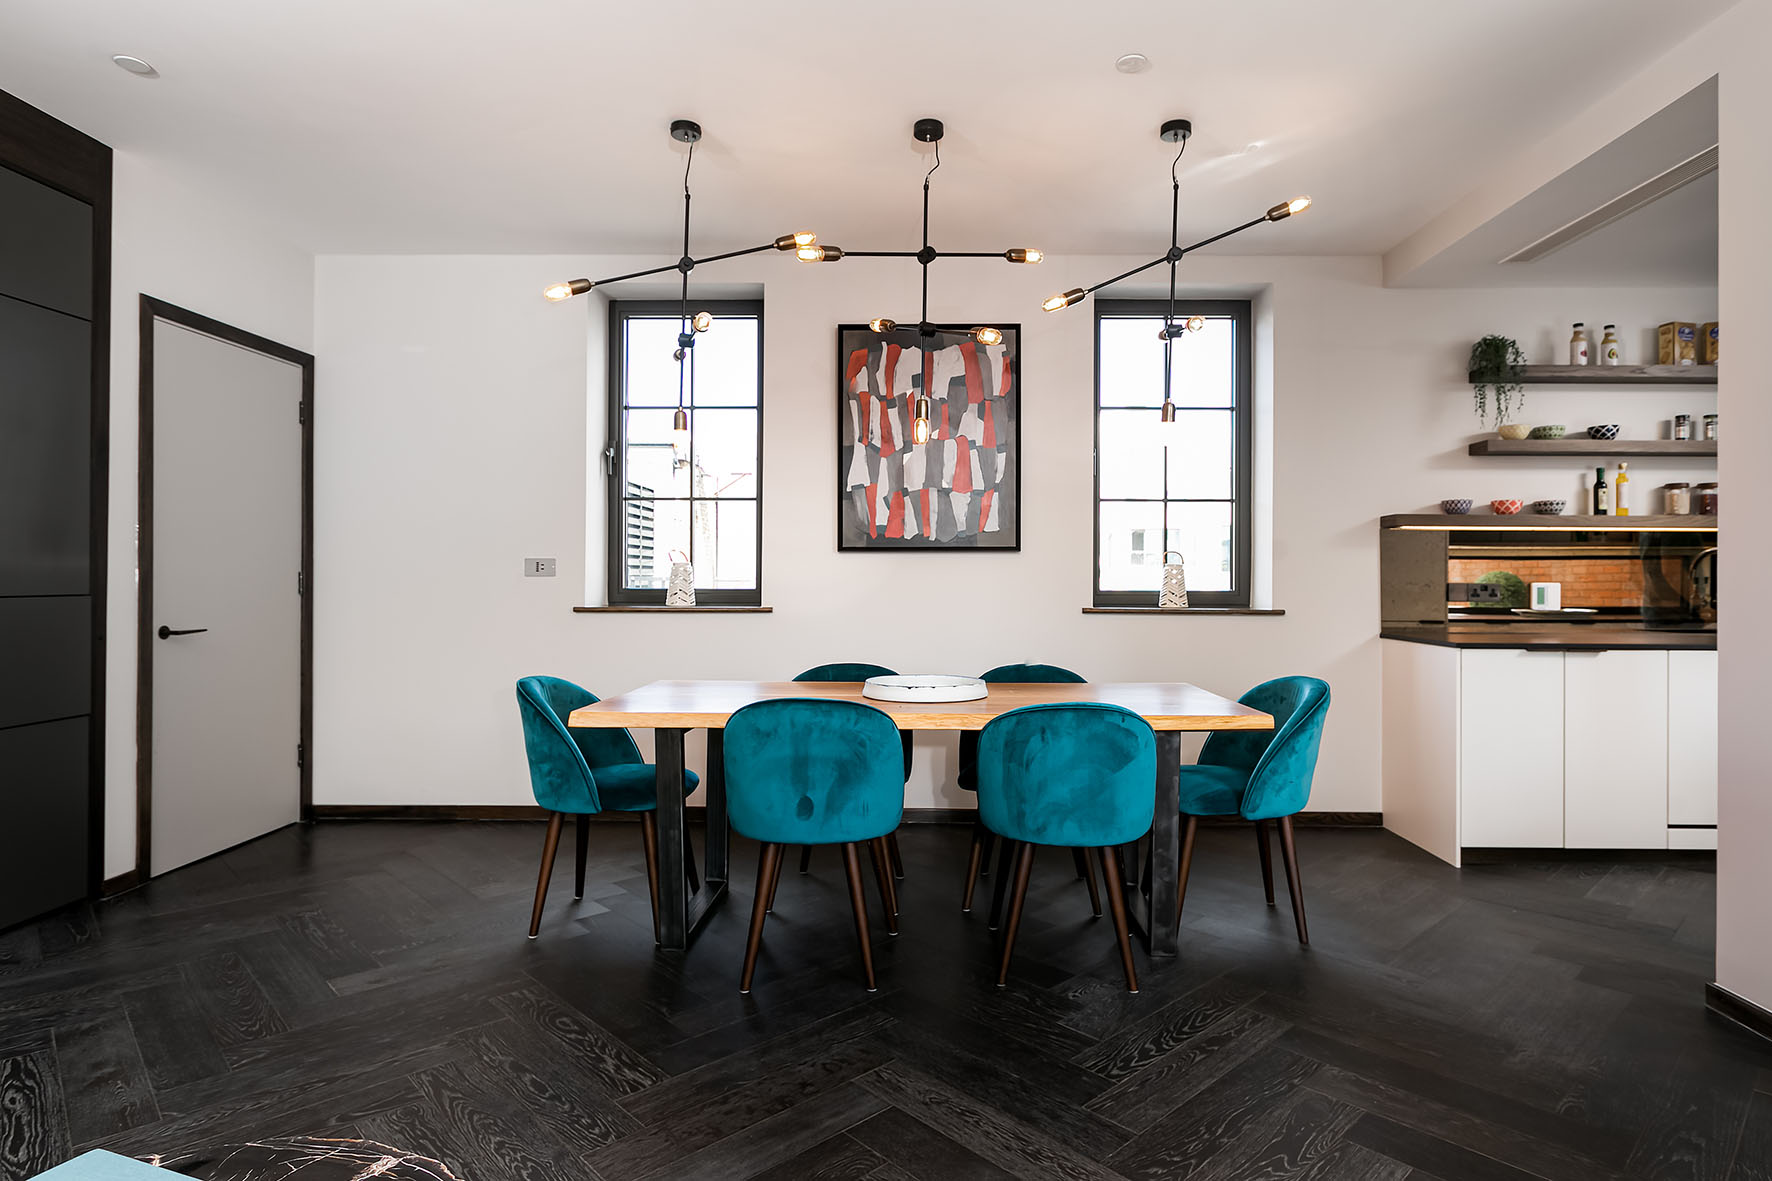 Lovelydays luxury service apartment rental - London - Soho - Great Marlborough St. IX - Lovelysuite - 2 bedrooms - 2 bathrooms - Dining living room - 5 star apartment in london - 6511e591ee0a - Lovelydays